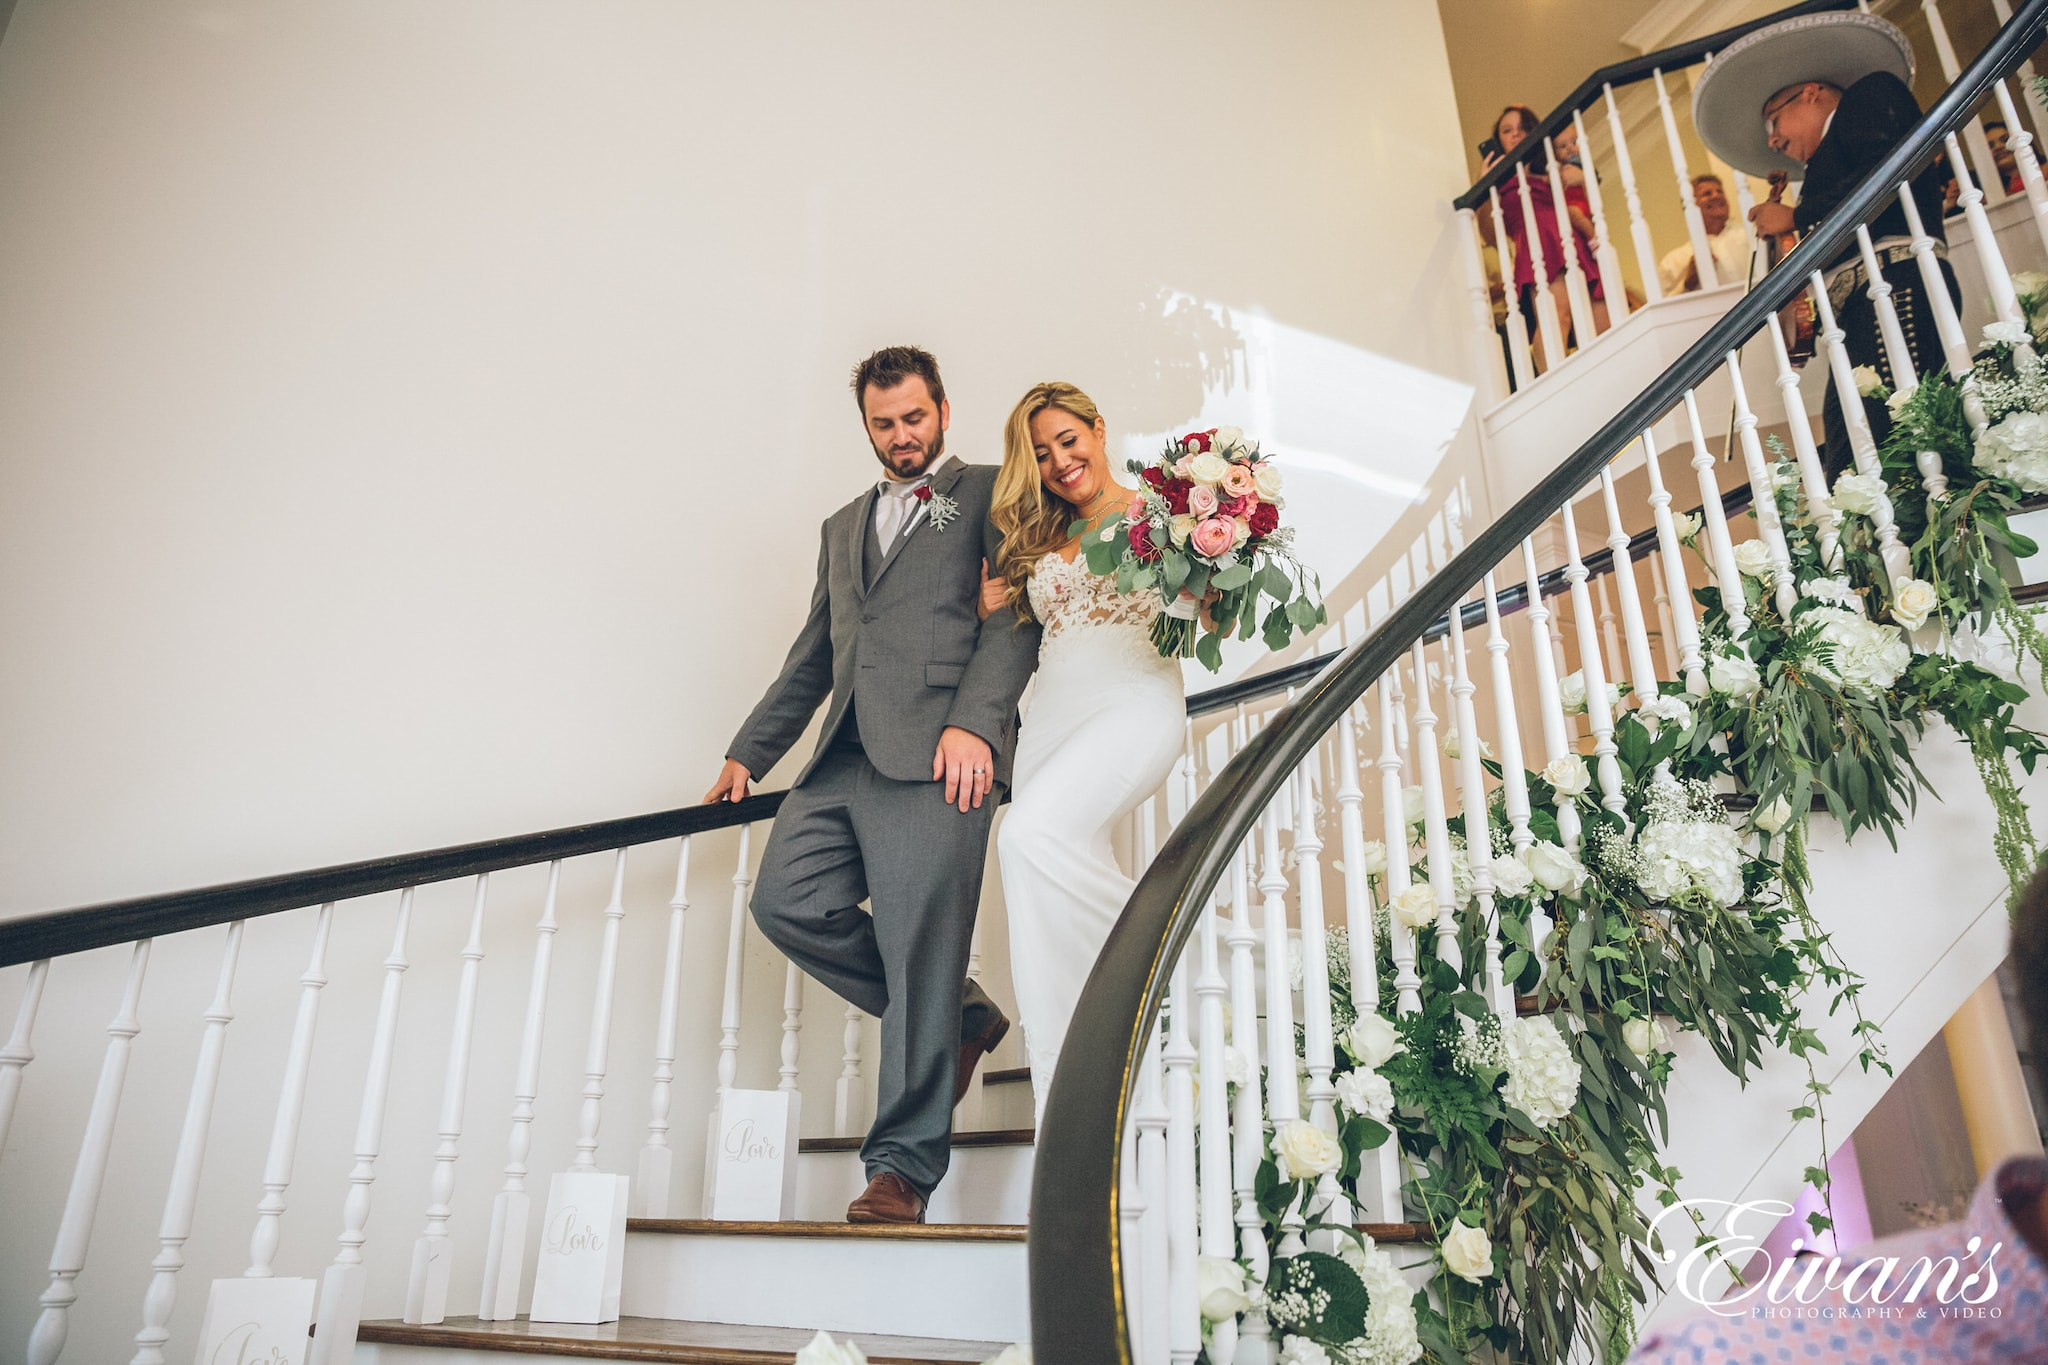 man in gray suit and woman in white wedding dress standing on staircase